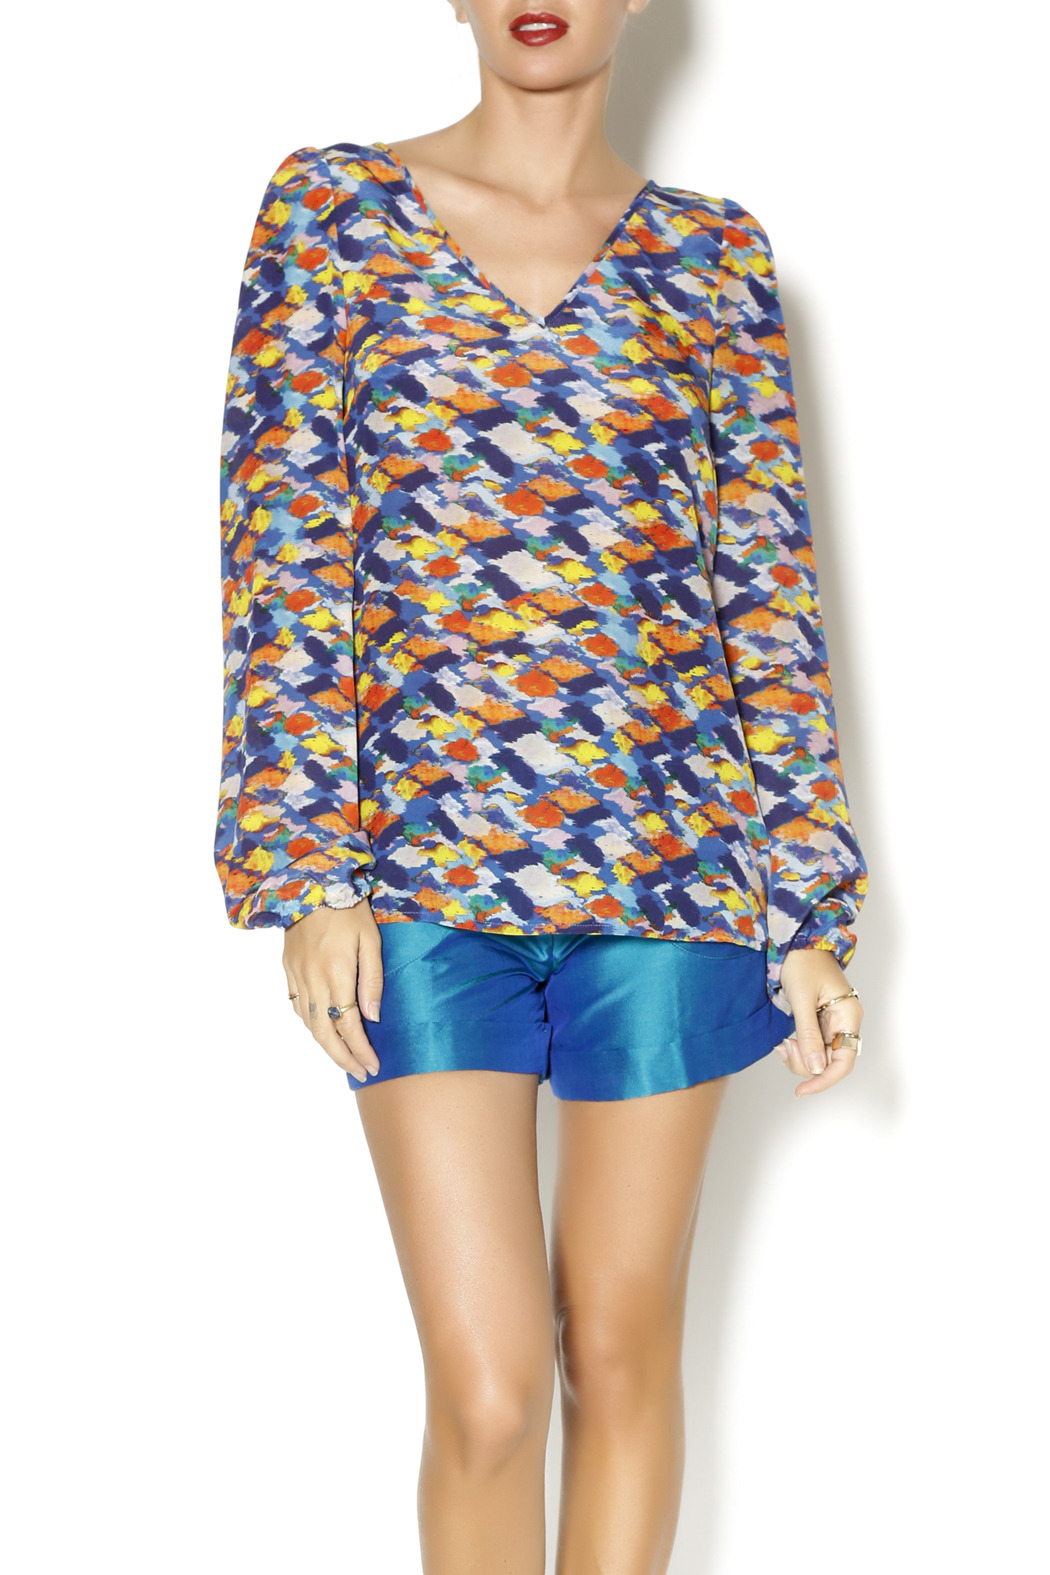 By Smith Monet Multicolor Blouse - Main Image